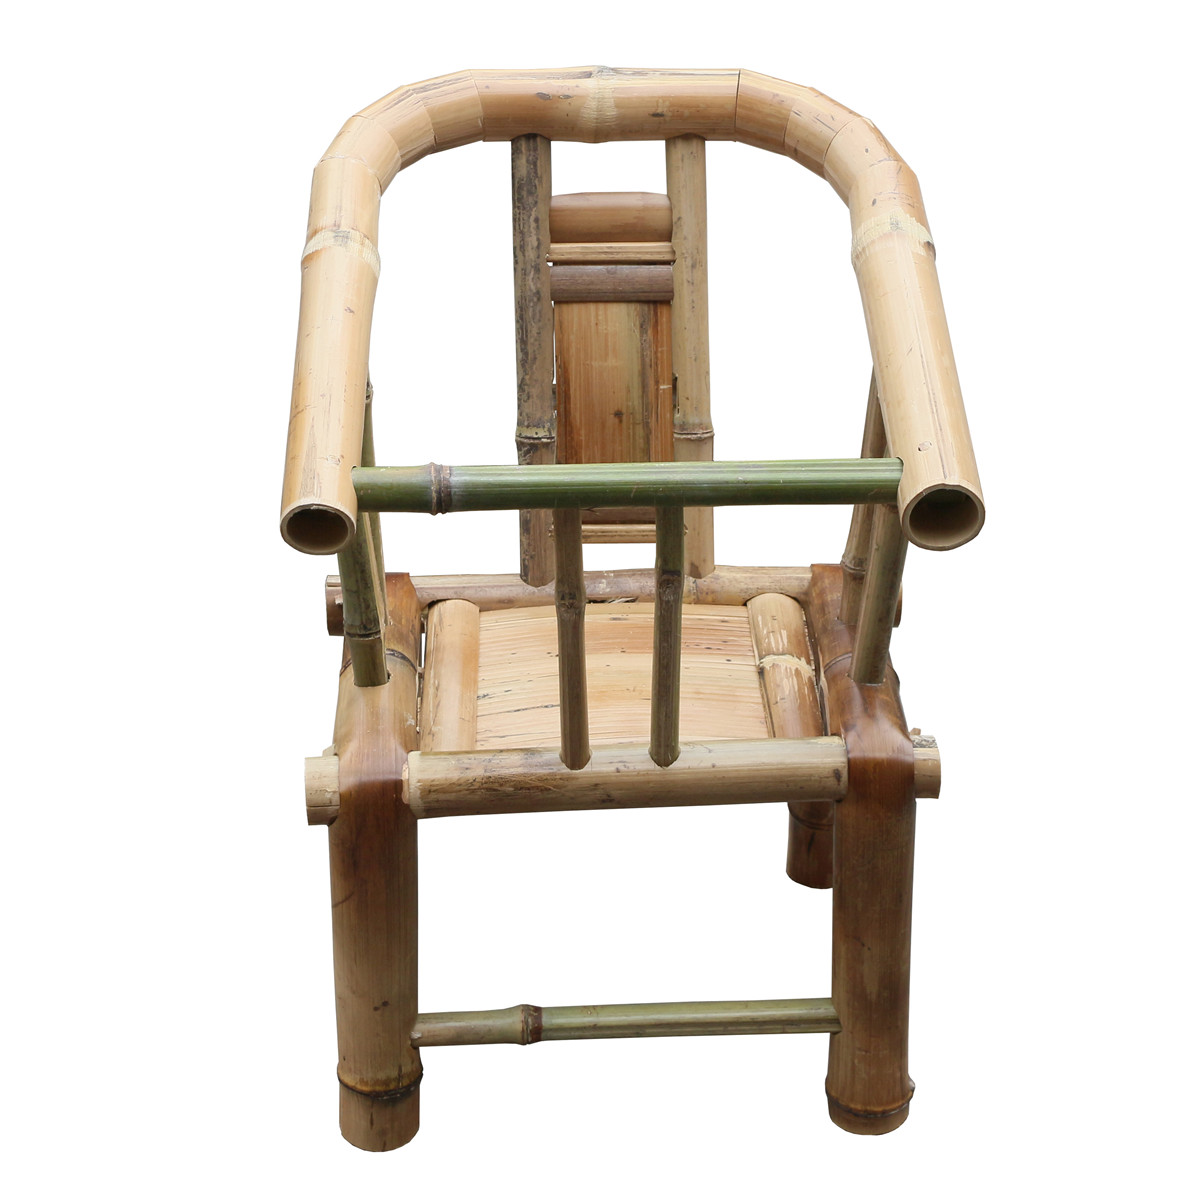 baby bamboo chair rattan dining room chairs uk green stool furniture children 39s